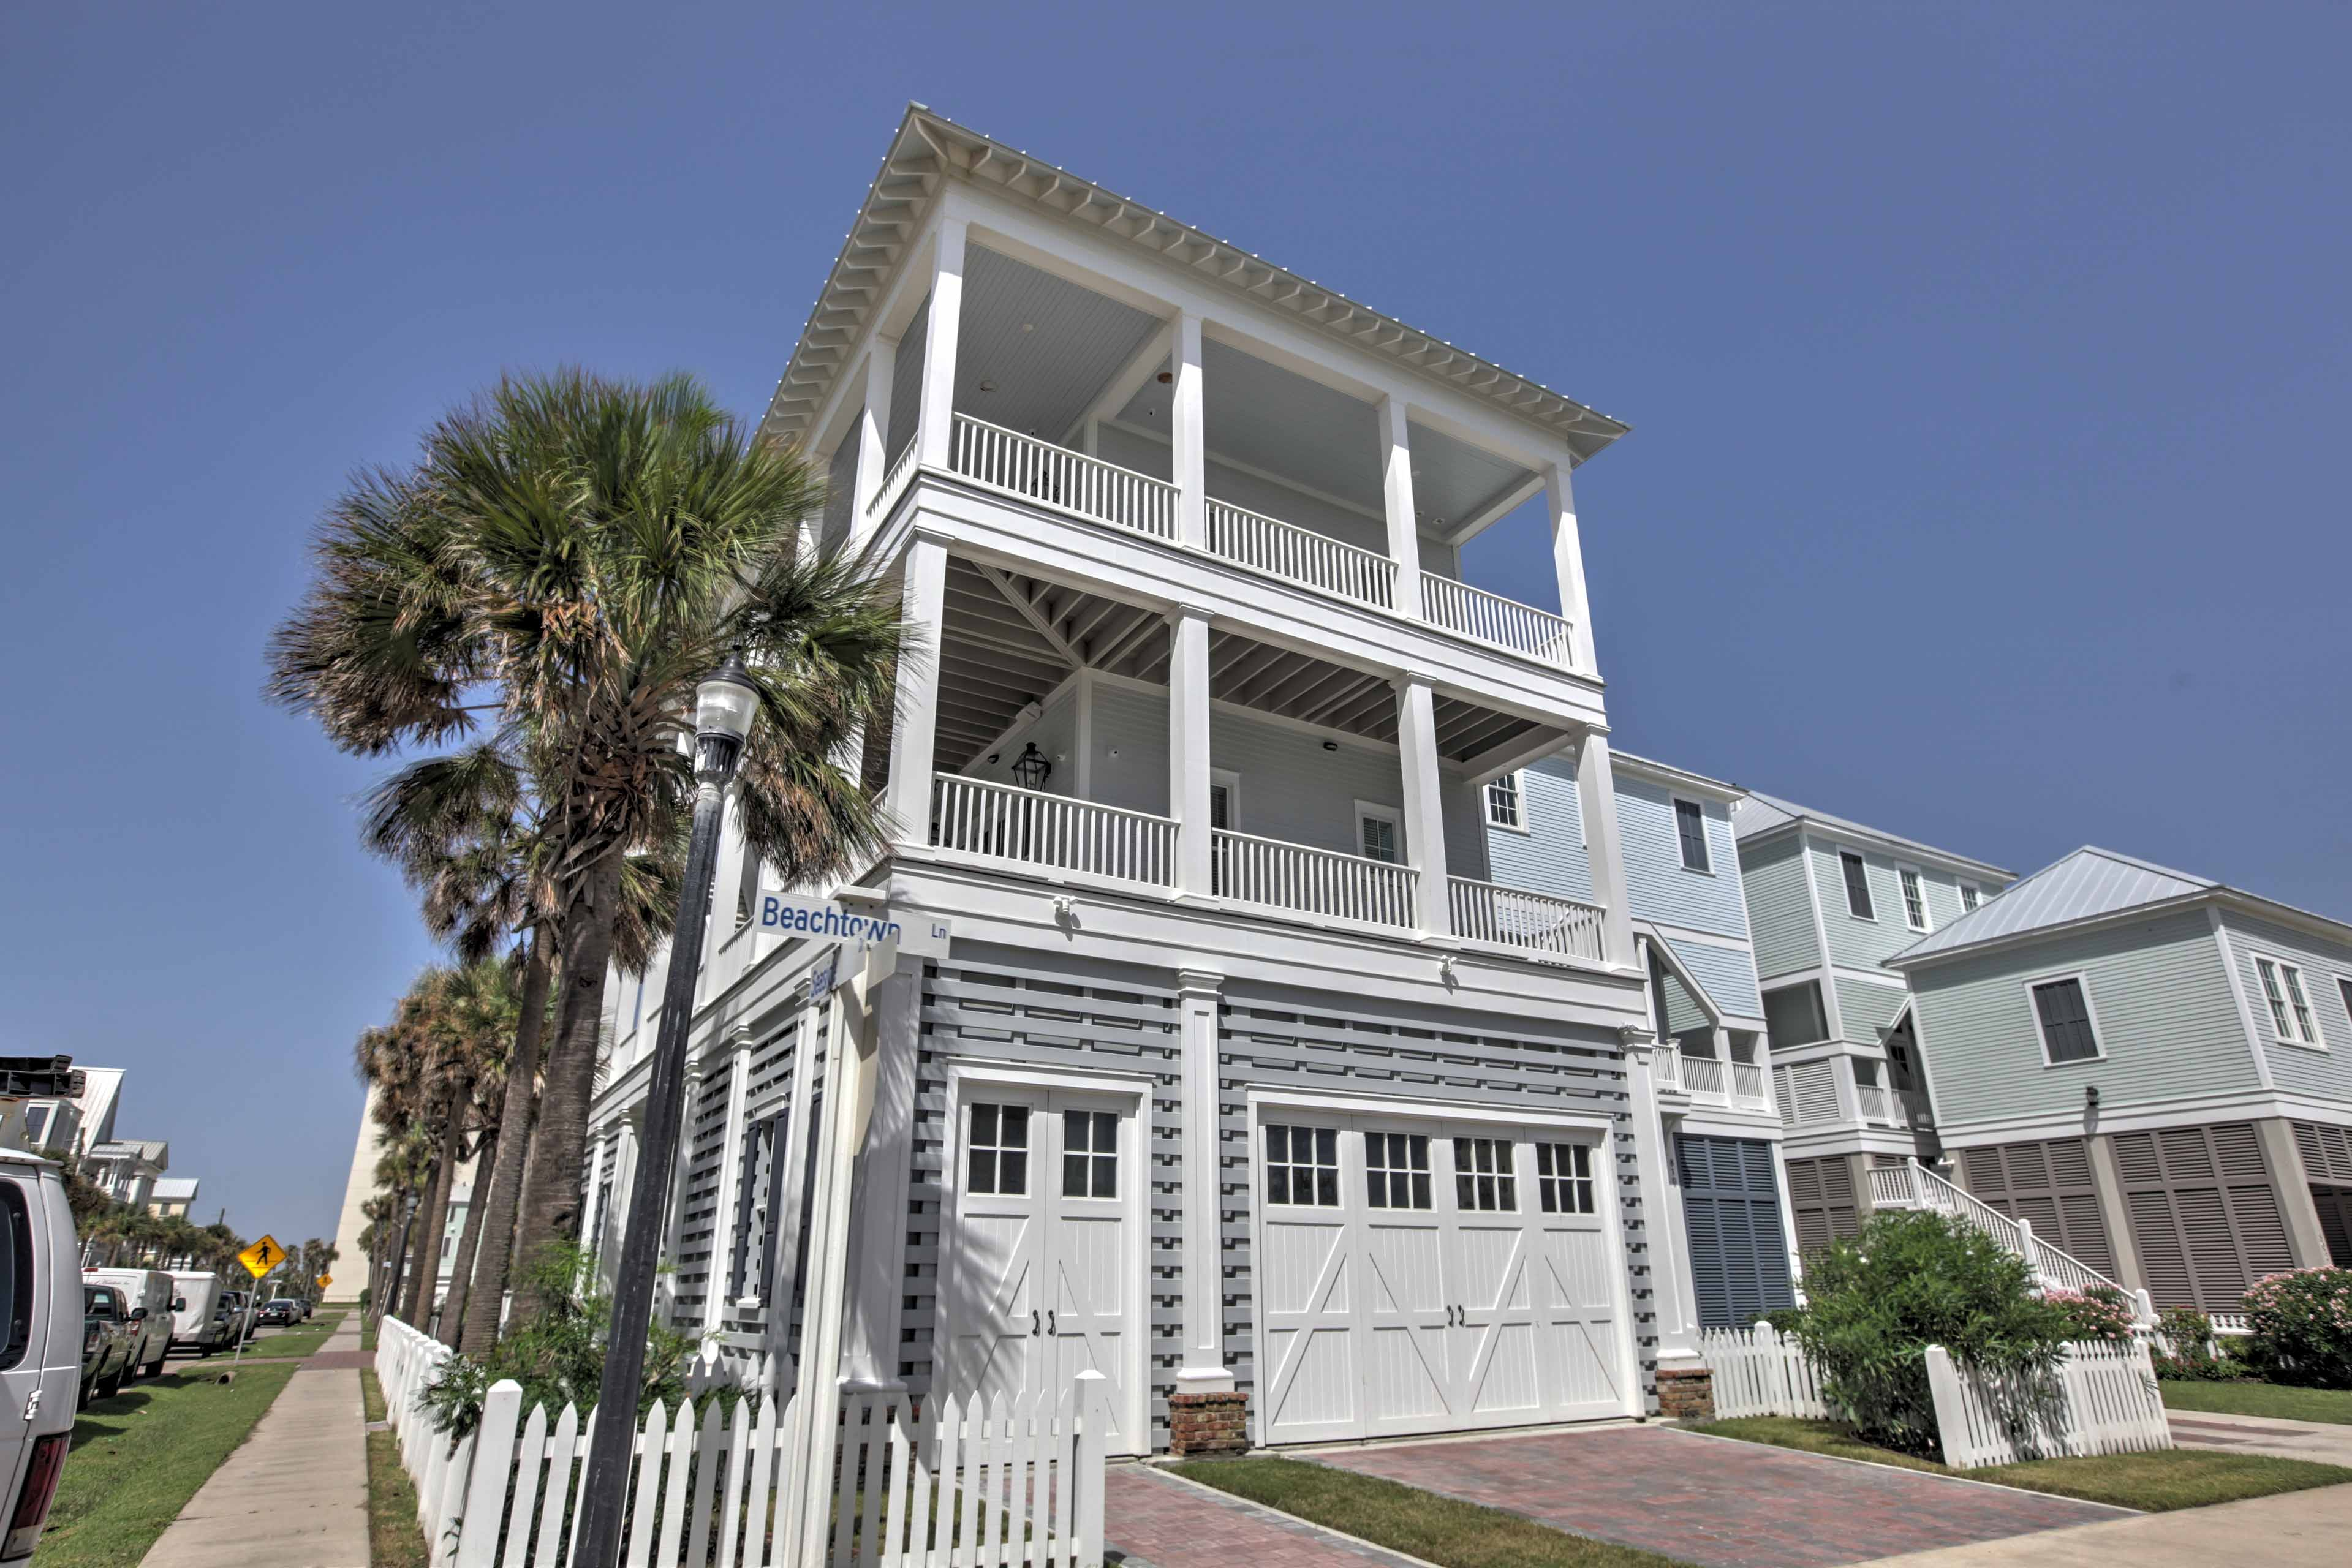 The home was constructed in 2016 and displays architecture from Galveston's historic past.